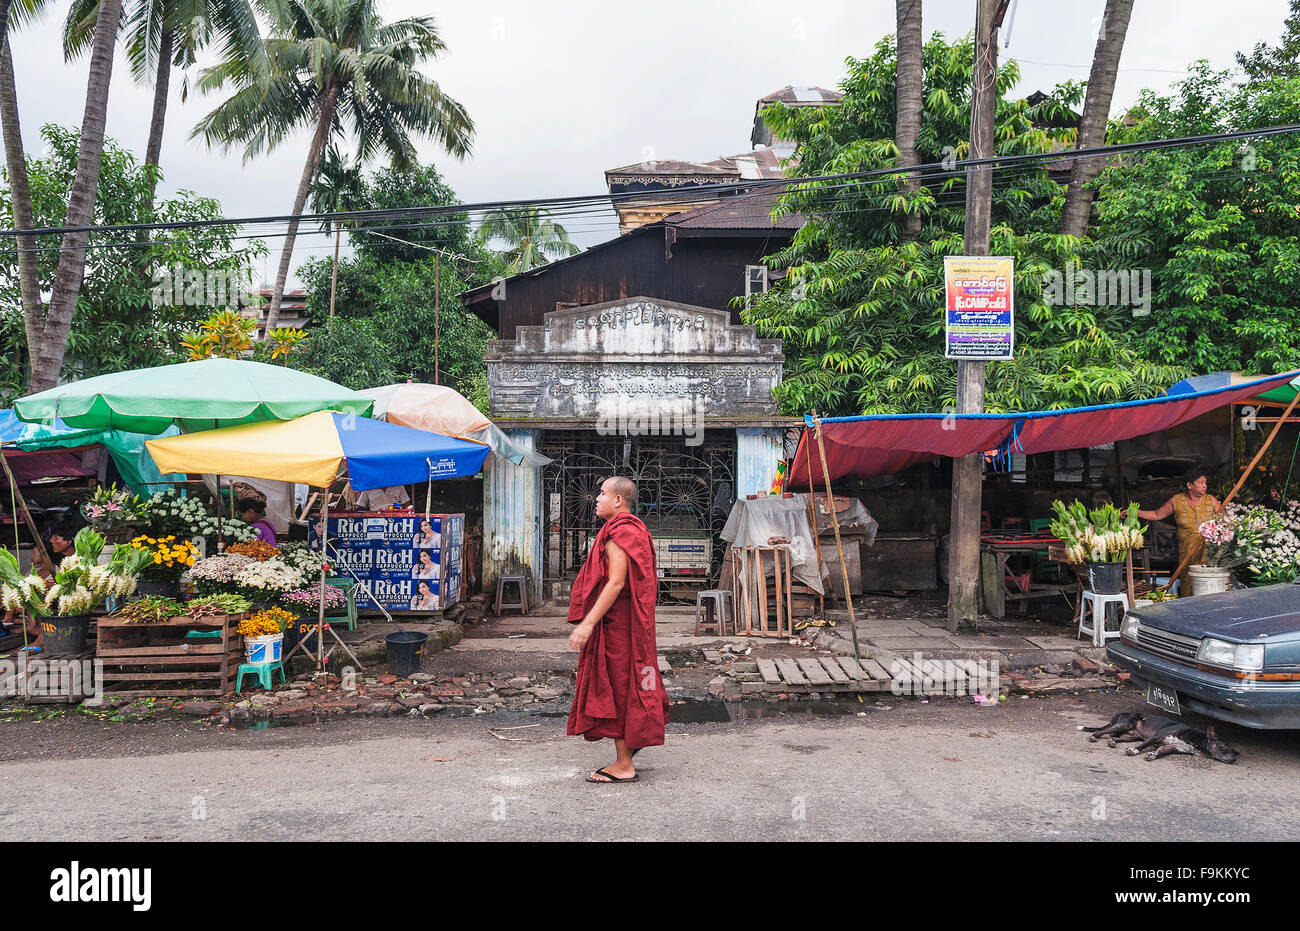 buddhist monk at street market in yangon myanmar - Stock Image